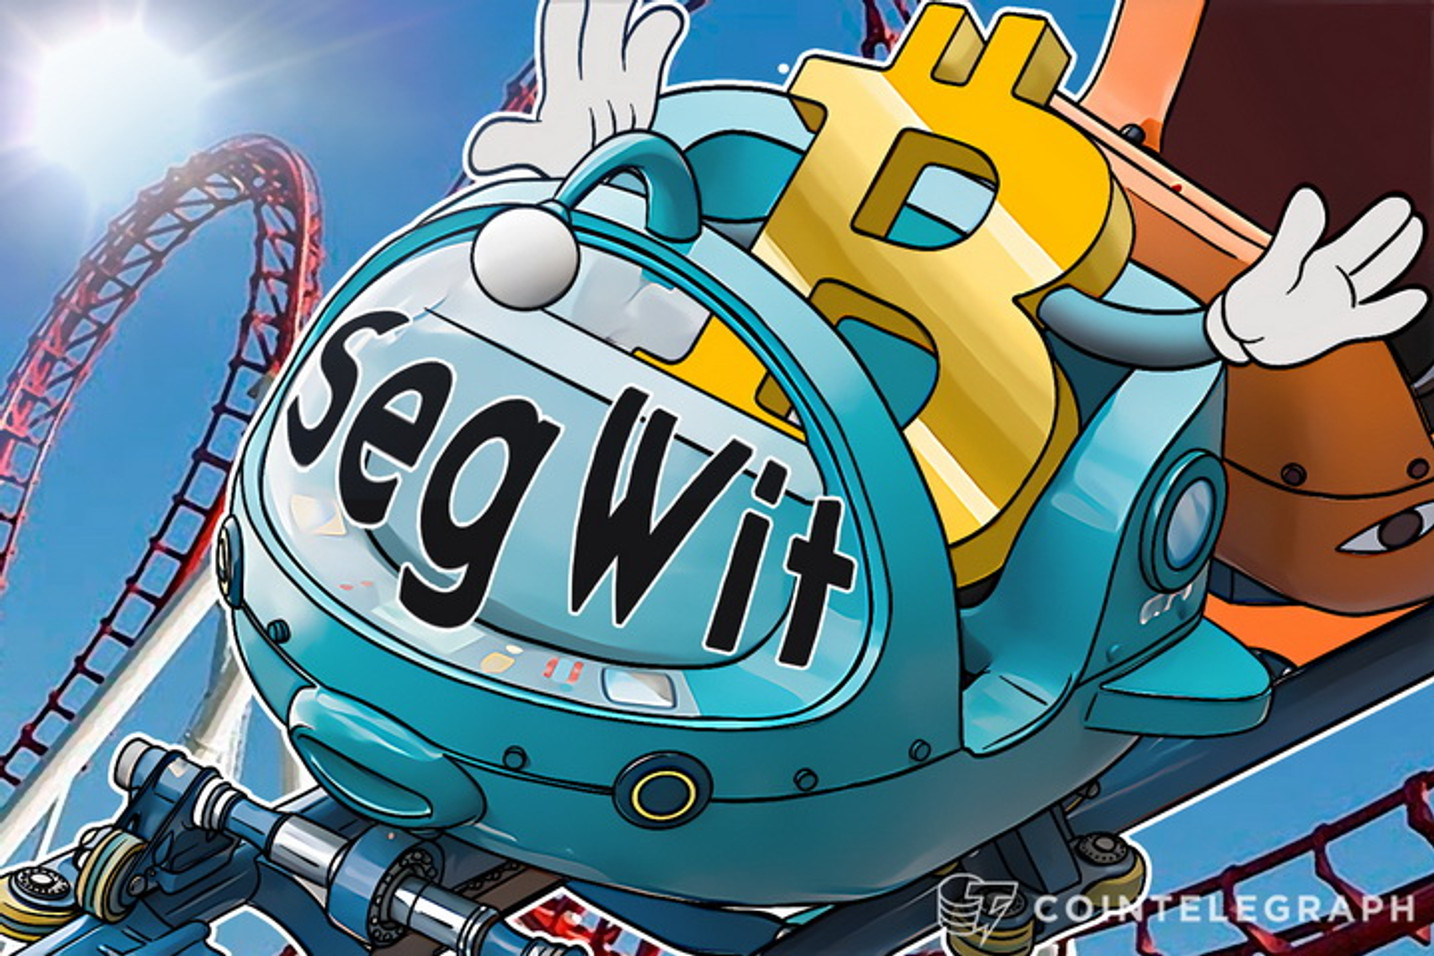 Summer of SegWit: Bitcoin Core Begins Segregated Witness Soft Fork